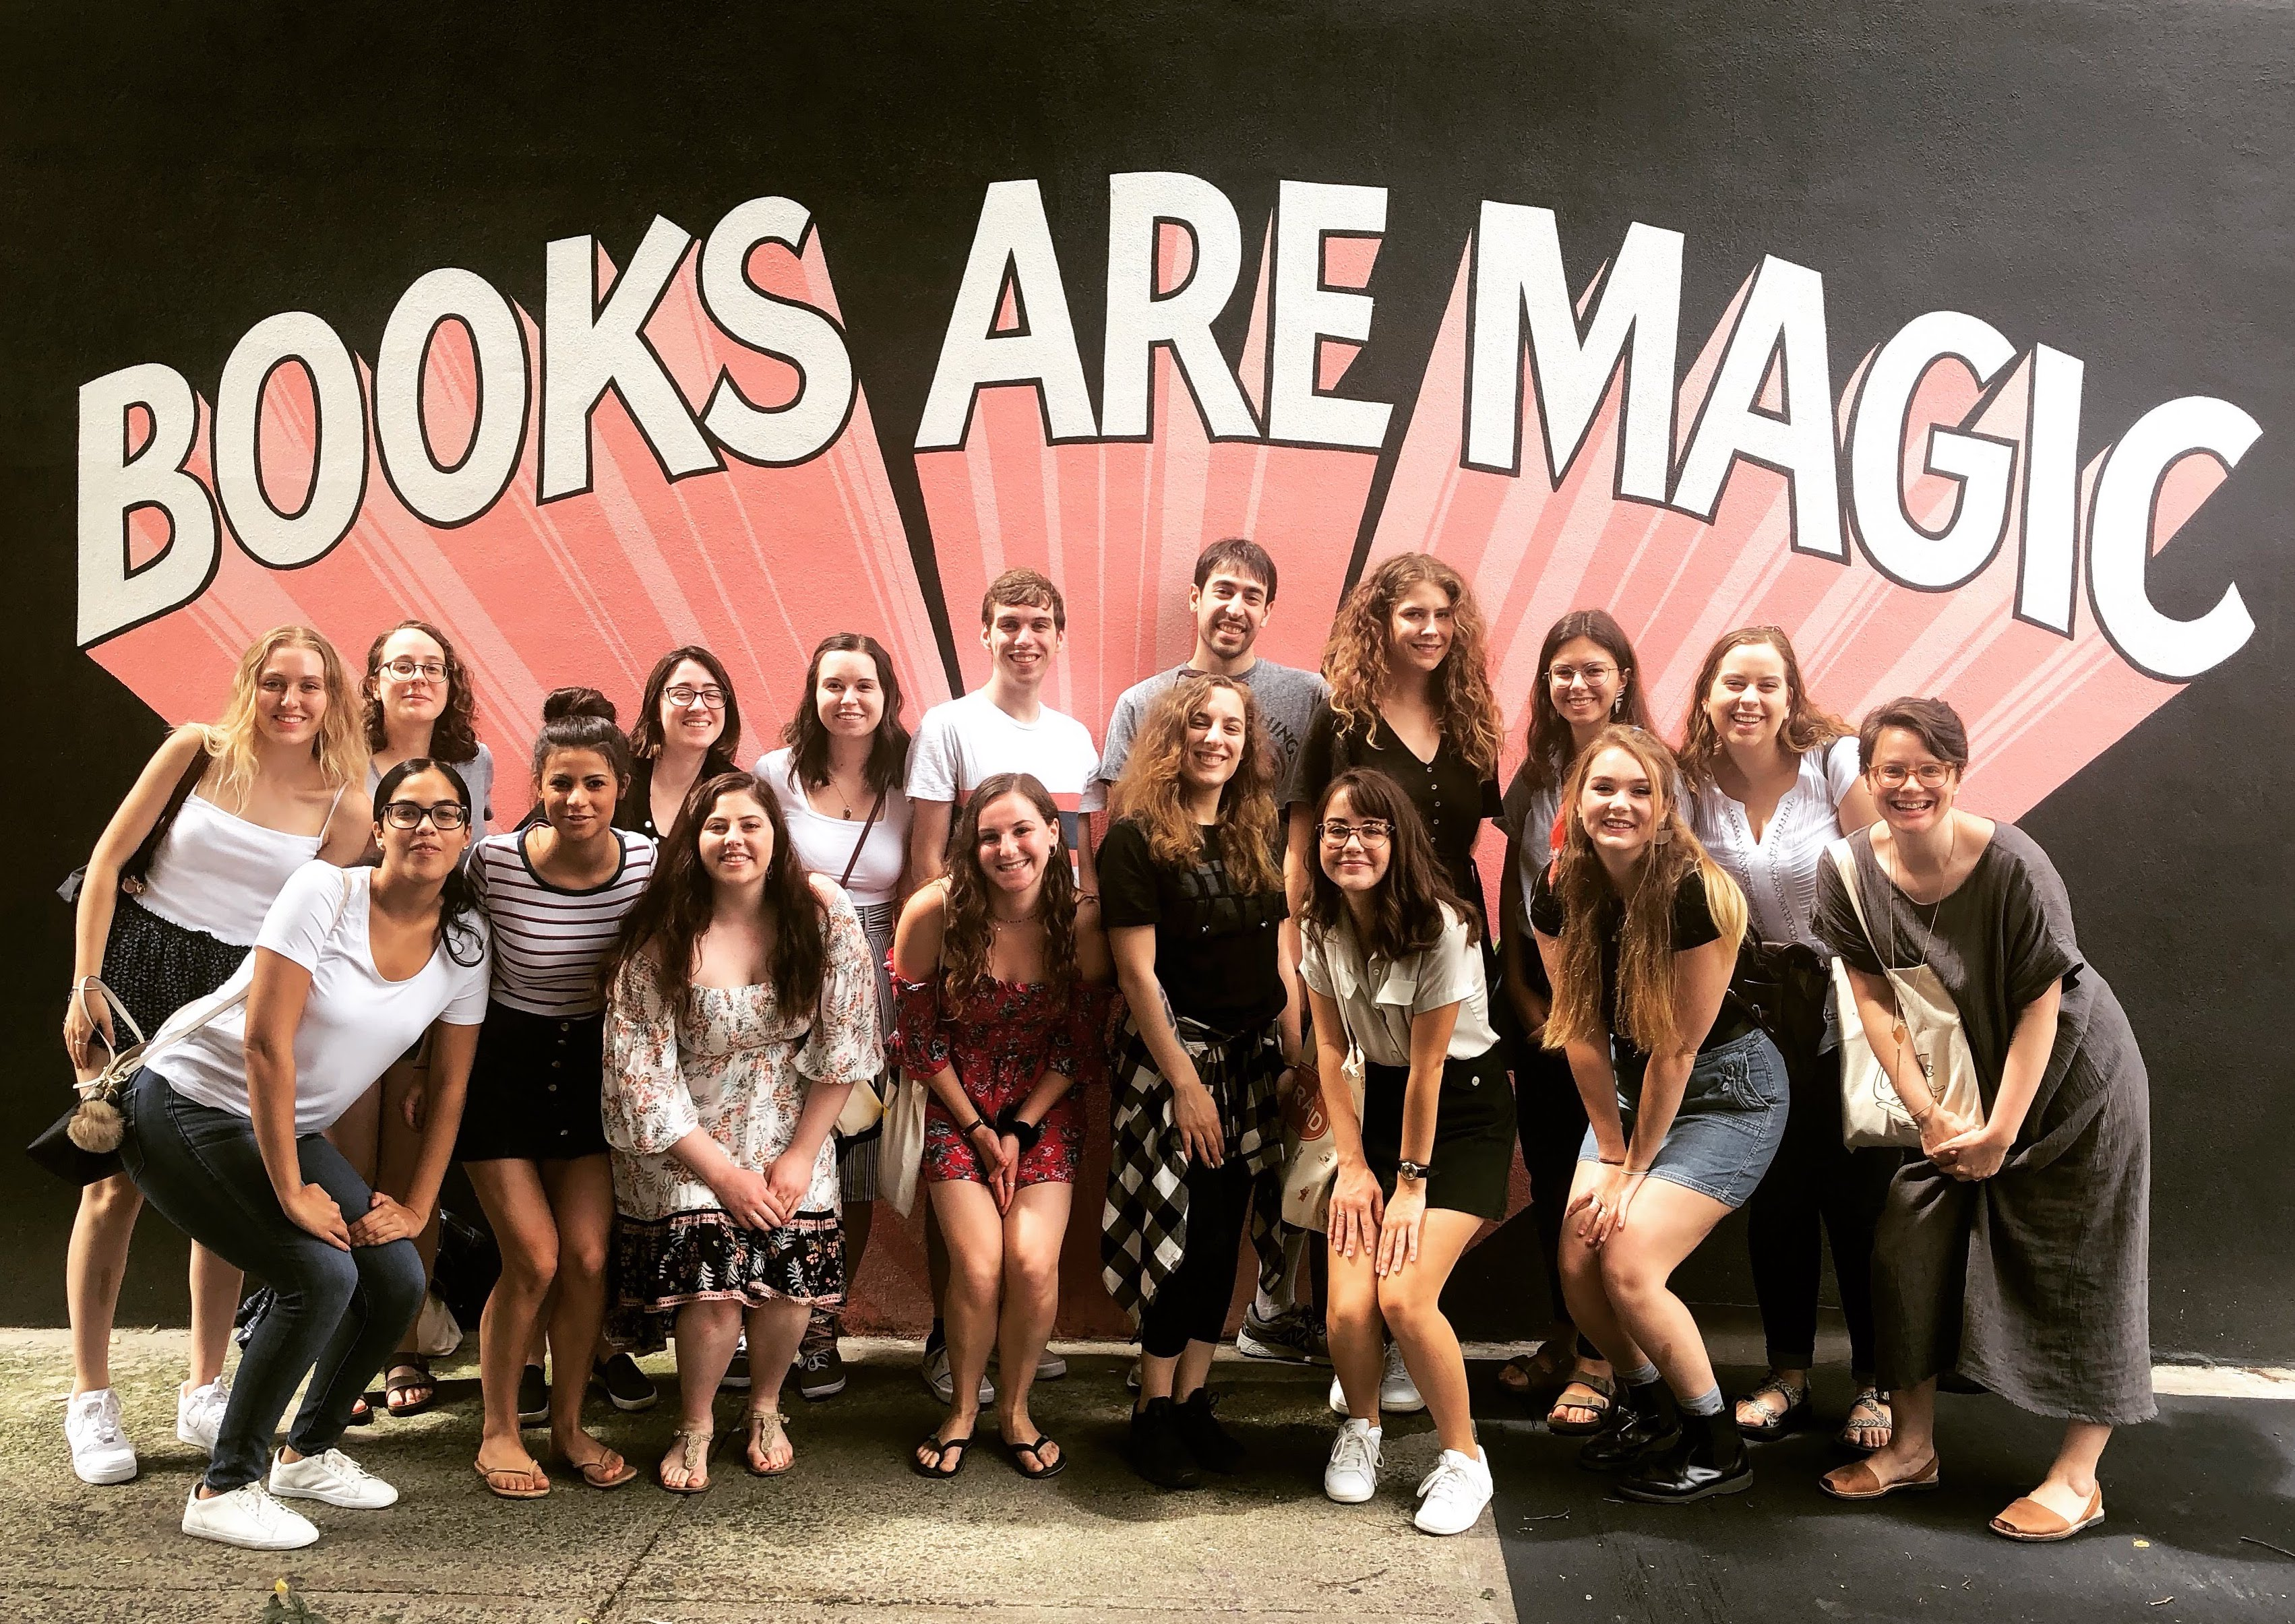 Students pose in front of the mural at Books Are Magic in Brooklyn.